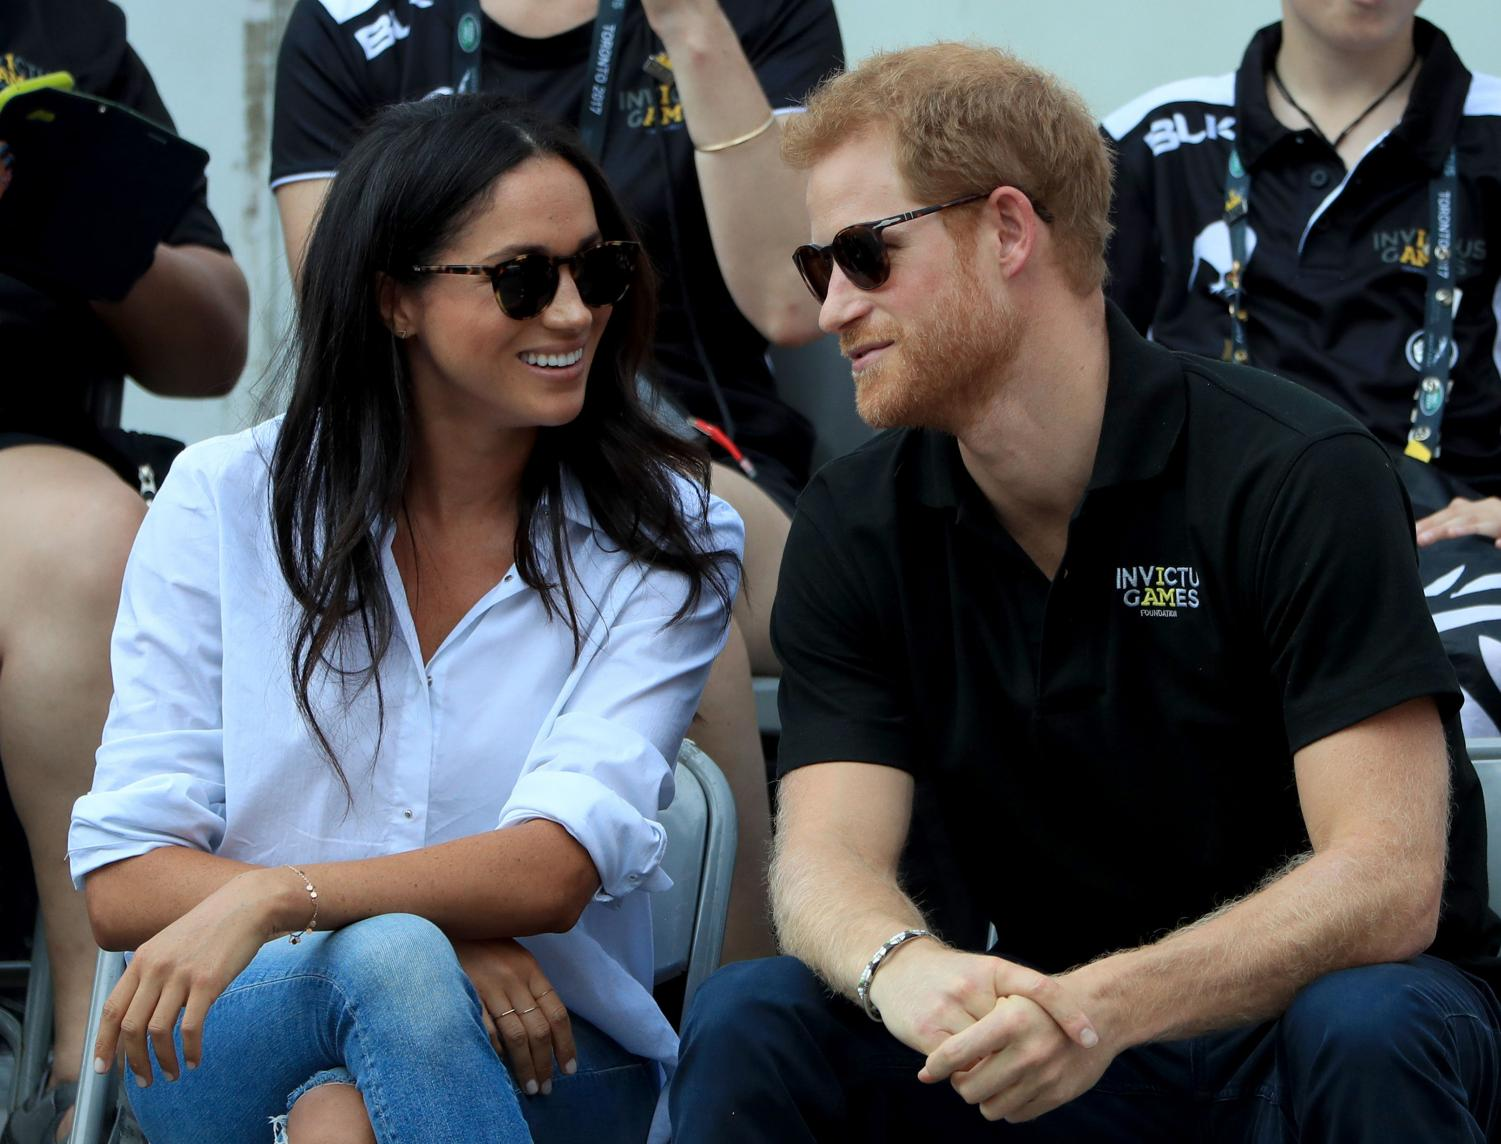 Prince Harry and Meghan Markle watch Wheelchair Tennis at the 2017 Invictus Games in Toronto, Canada on Monday, September 25, 2017. Just over a year later, the two would announce they're expecting their first child.